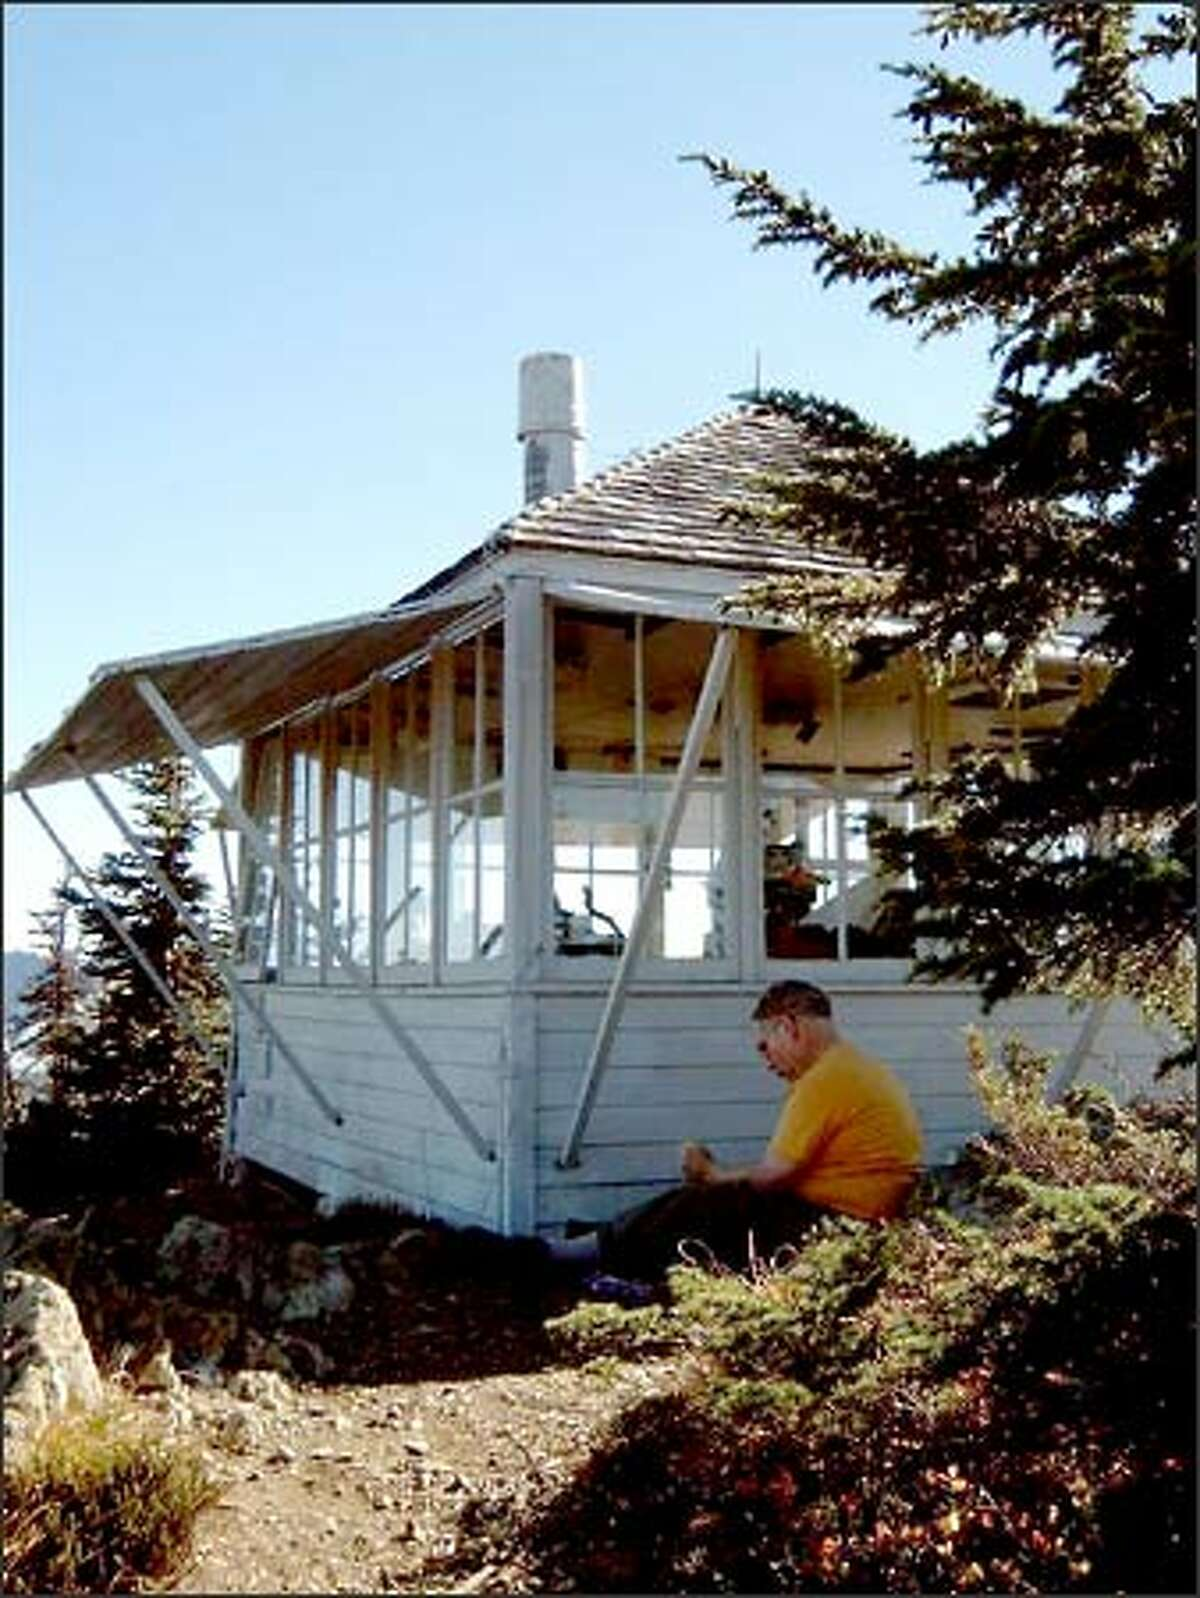 Built in 1933 and now maintained by the Mount Baker Hiking Club, the Winchester Mountain lookout offers commanding views of the North Cascades -- and a shady place to rest.